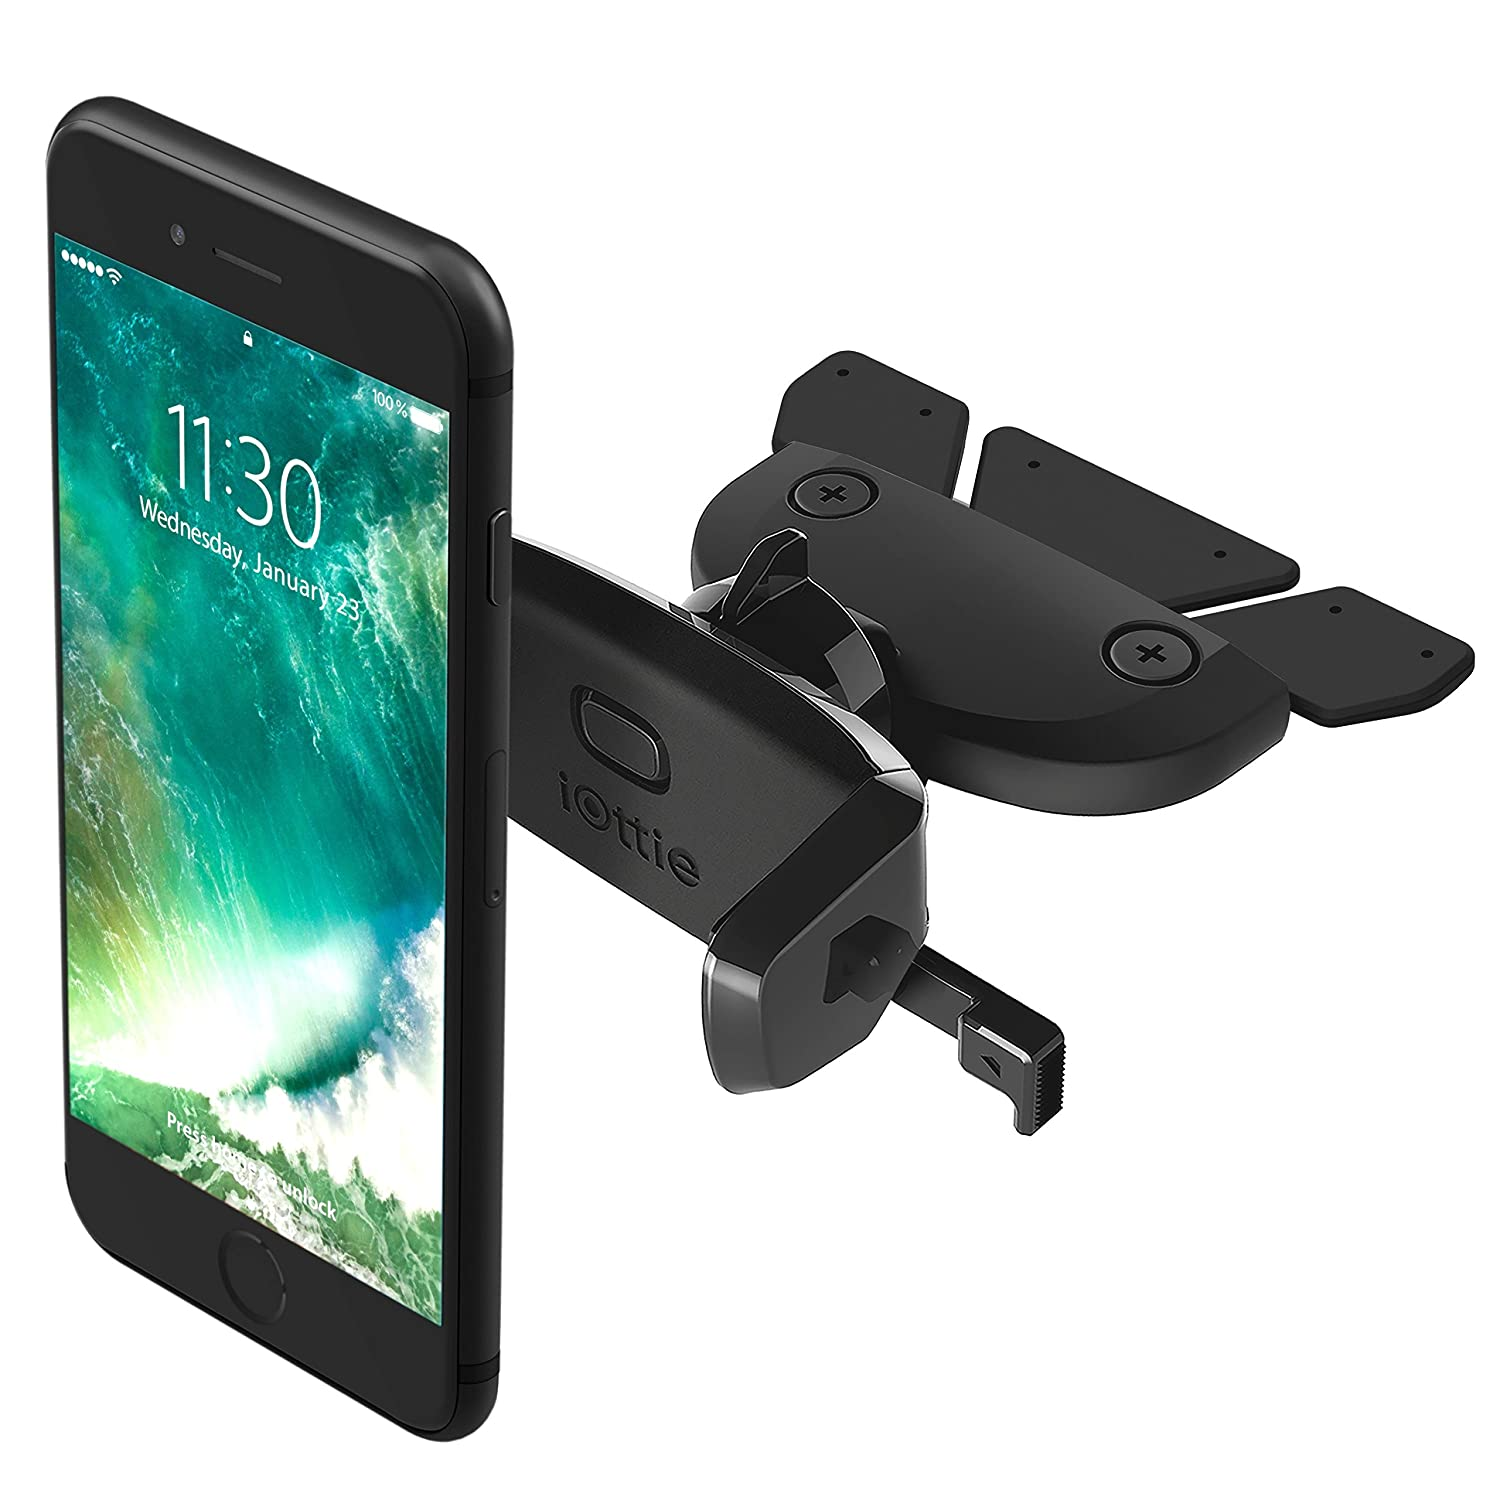 iOttie Easy One Touch Mini CD Slot Car Mount Holder Cradle for iPhone X 8/8 Plus 7 7 Plus 6s Plus 6s 6 SE Samsung Galaxy S8 Plus S8 Edge S7 S6 Note 8 5 Nexus 6